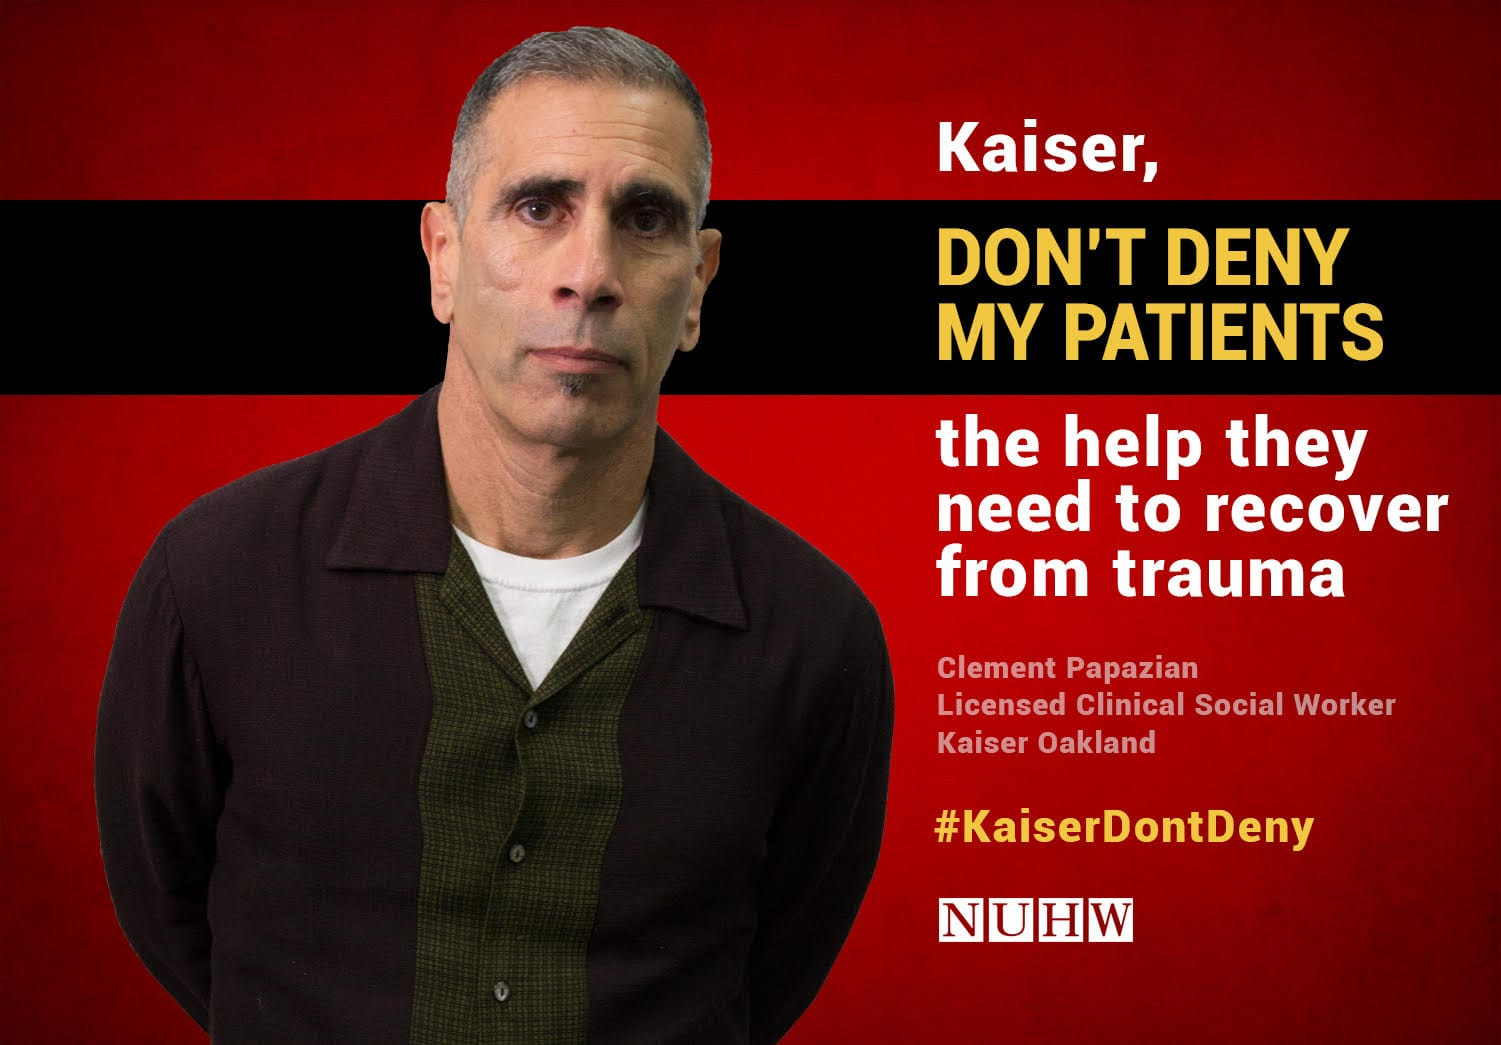 Kaiser, don't deny my patients the help they need to recover from trauma. -- Clement Papazian, Licensed Clinical Social Worker, Kaiser Oakland